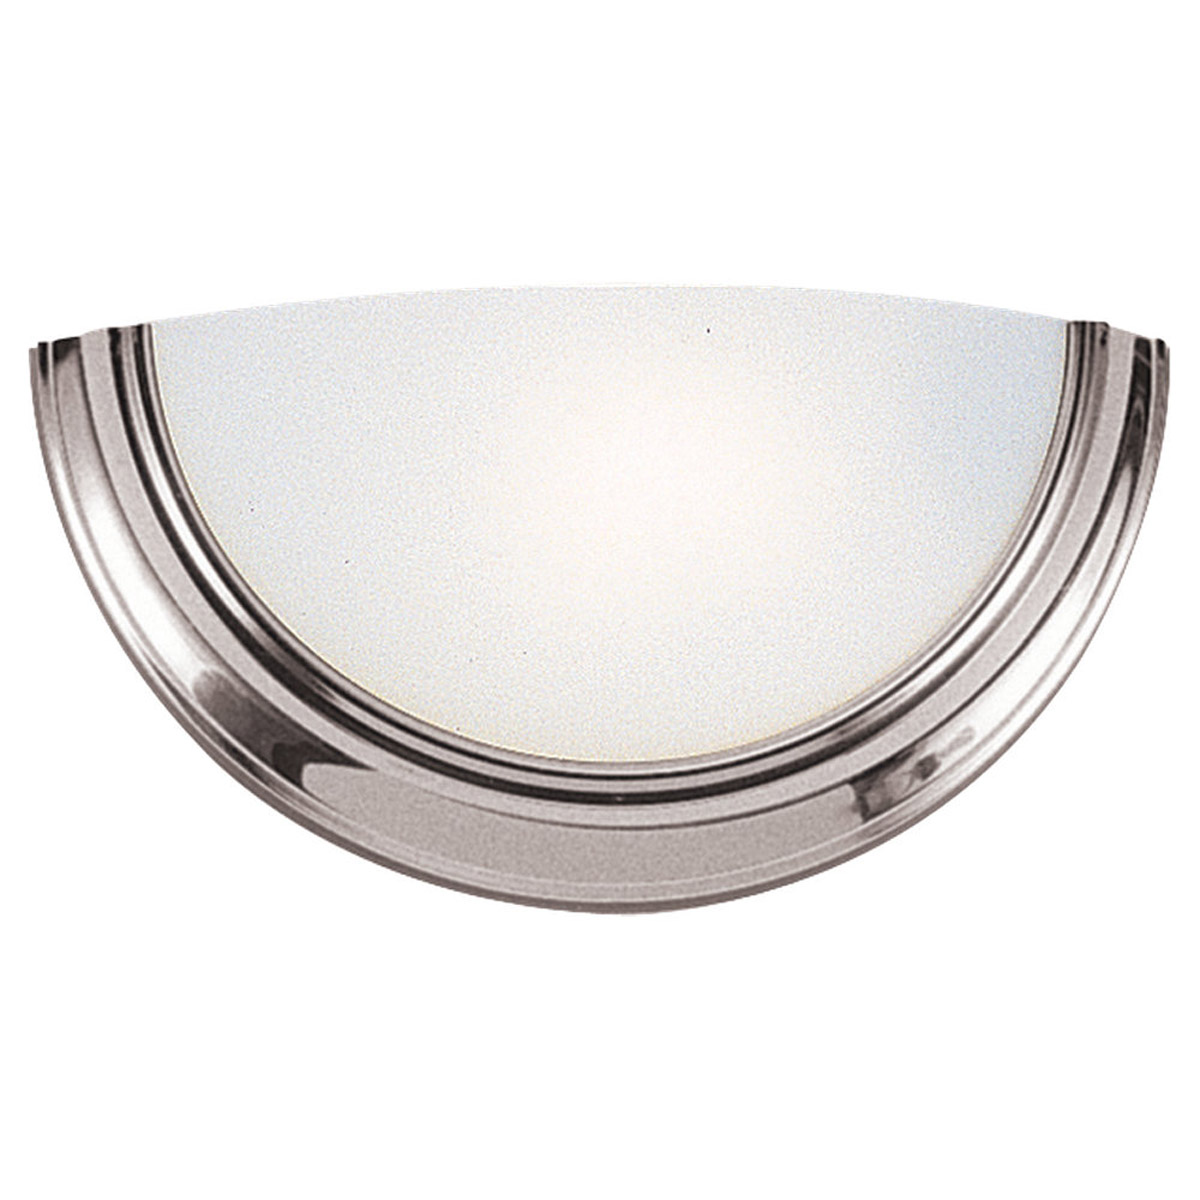 Sea Gull Lighting Signature 1 Light Bath Vanity in Brushed Nickel 4135-962